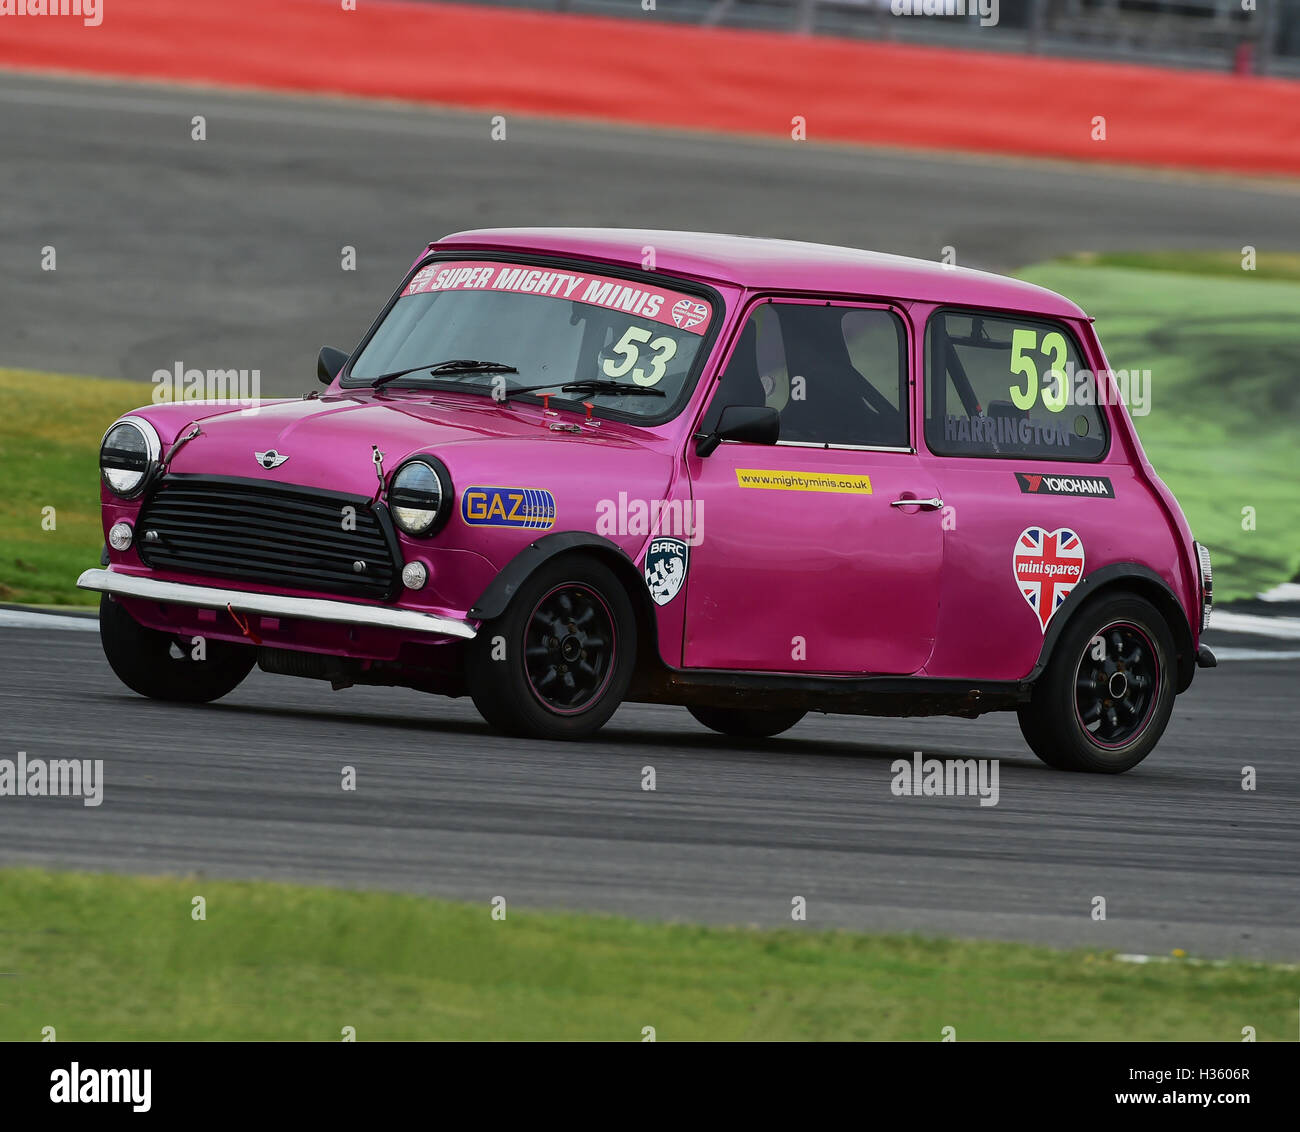 Damien Harrington, Super Mighty Mini, 1293, Mighty Mini Championship, Saturday, Silverstone, Silverstone truck festival, - Stock Image